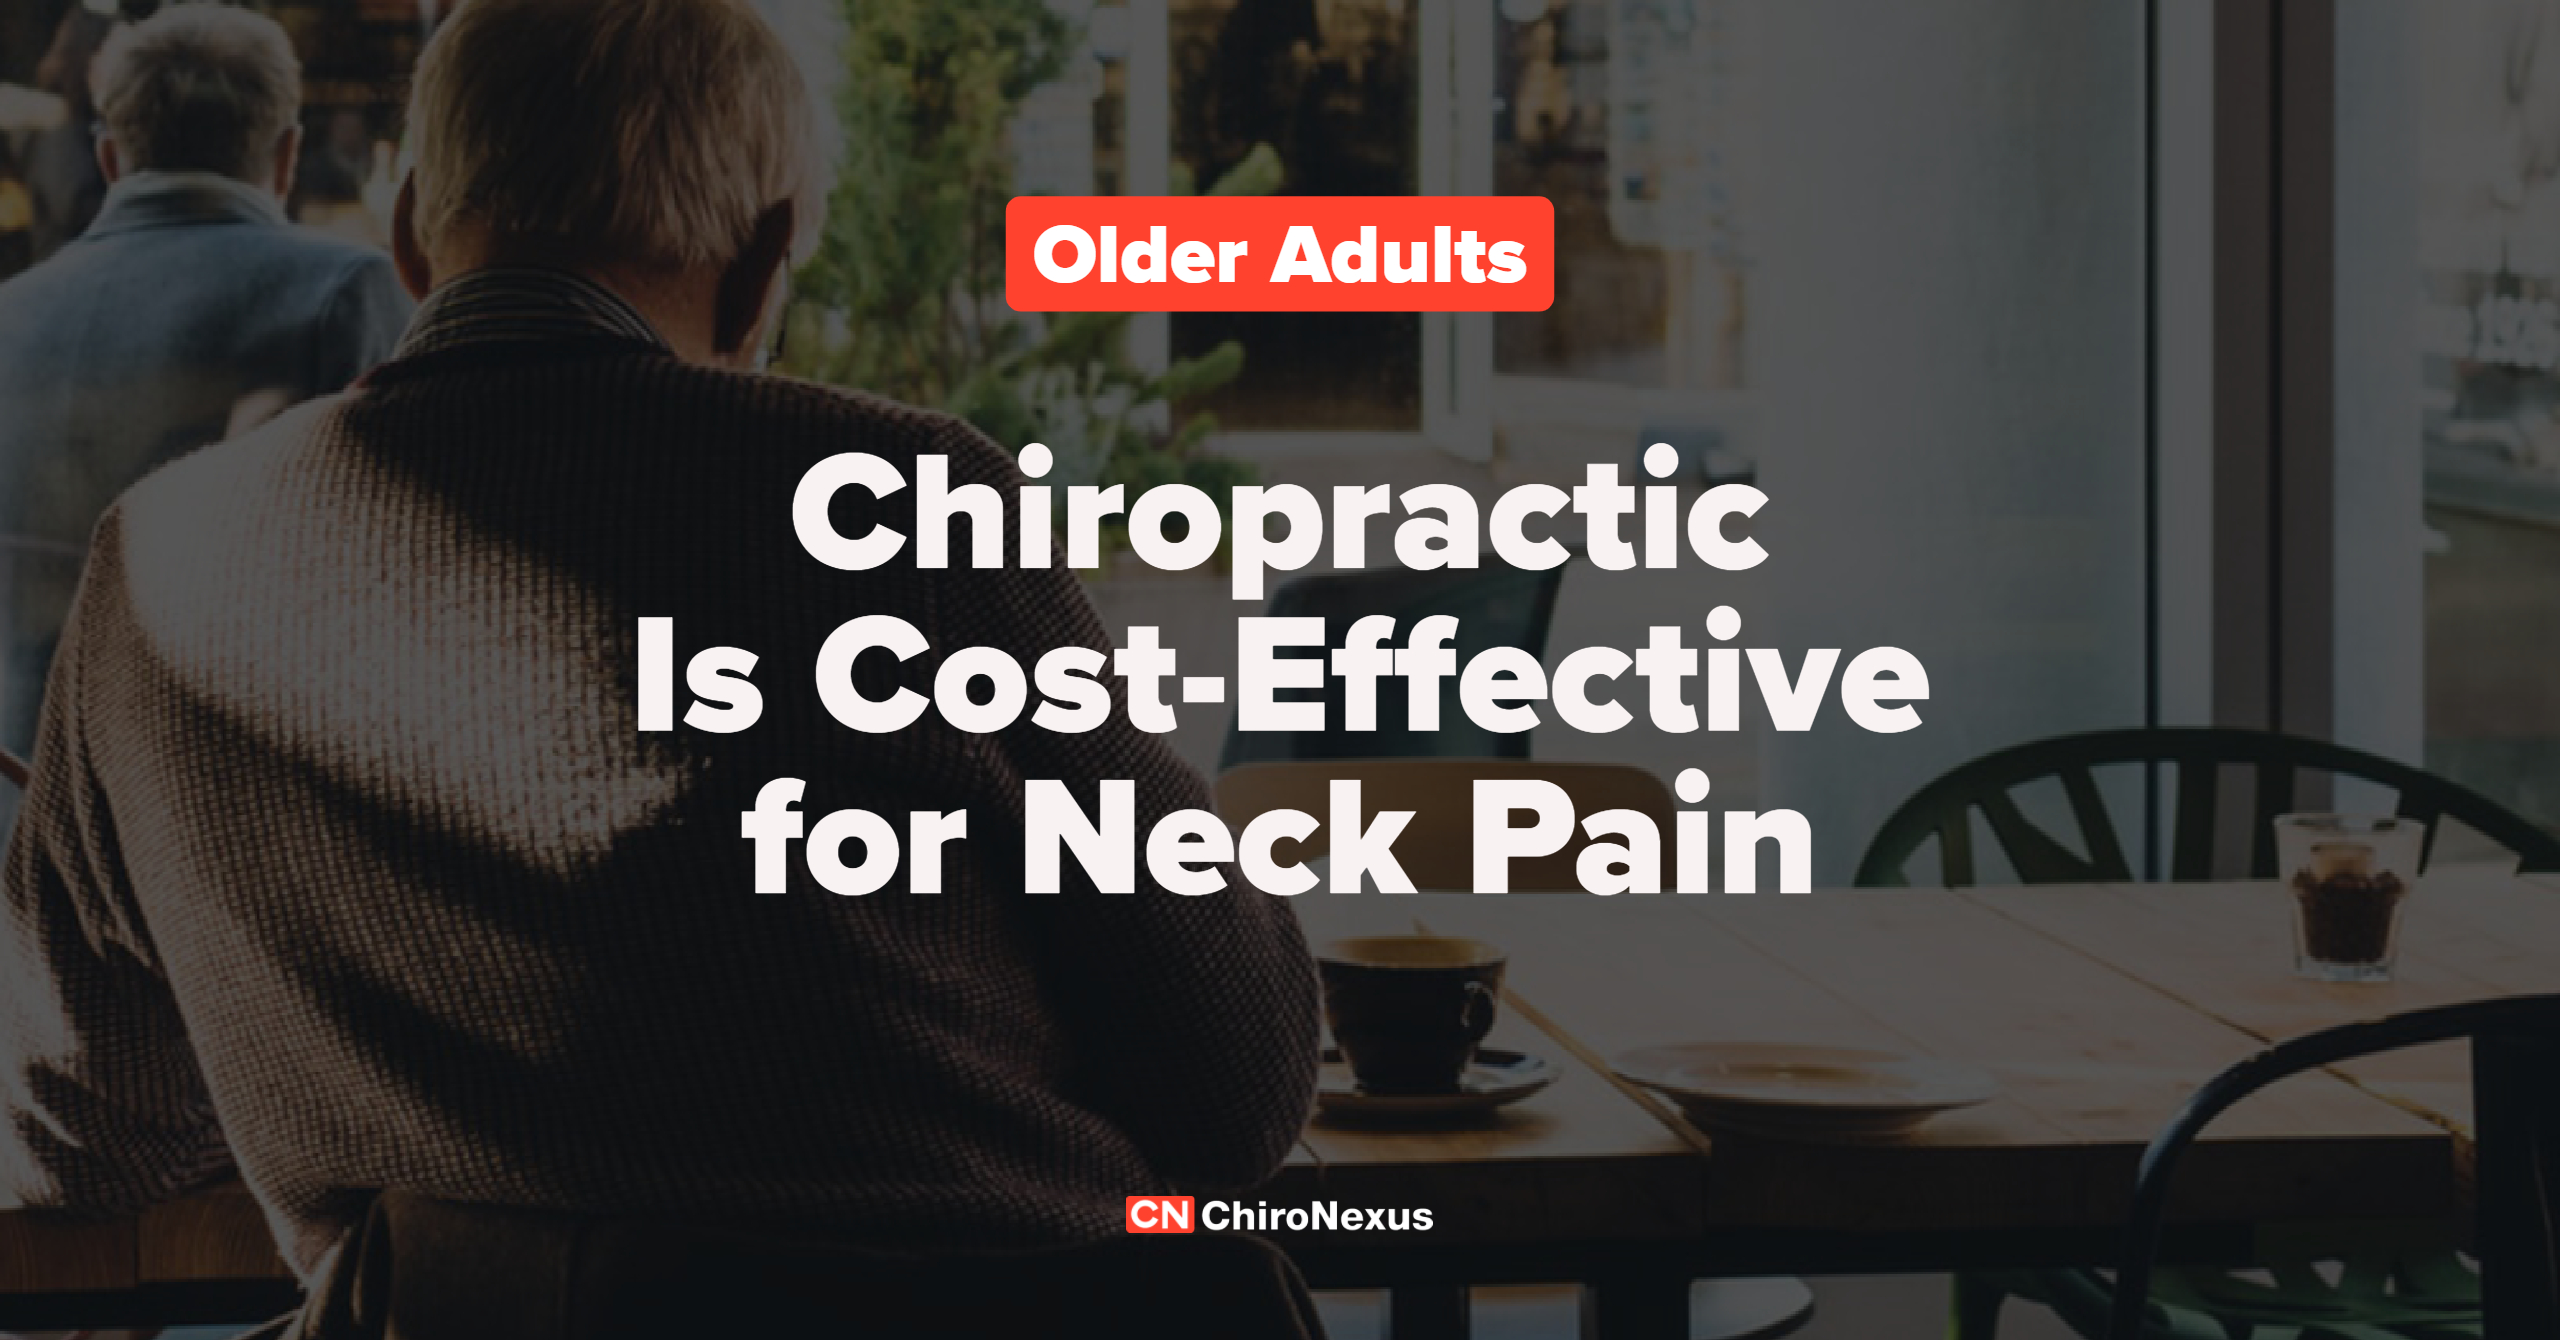 Chiropractic is a Cost-Effective Option for Older Adults with Neck Pain